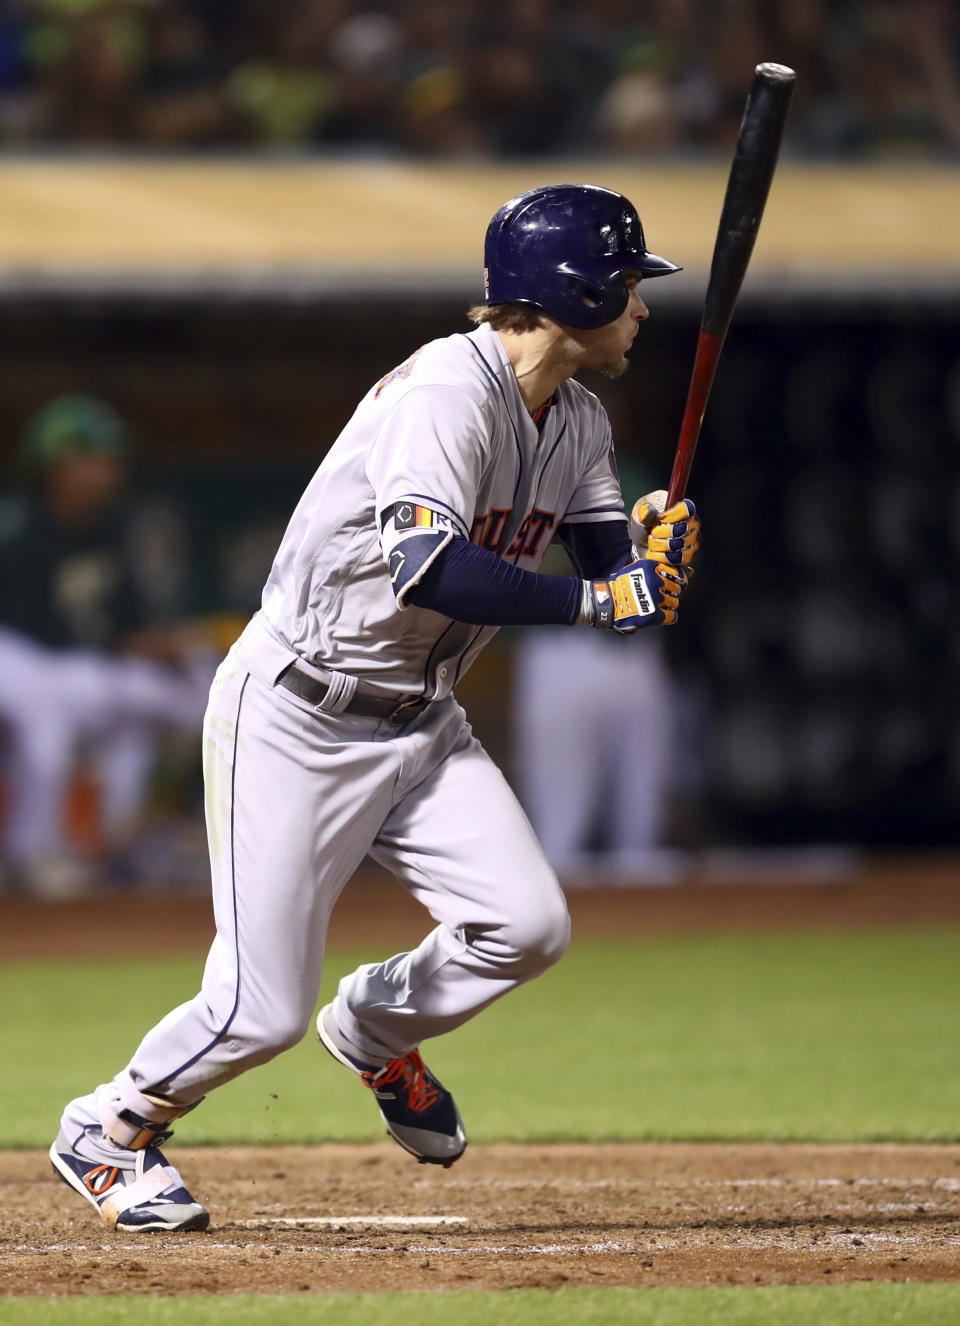 Houston Astros' Josh Reddick watches his RBI single against the Oakland Athletics during the sixth inning of a baseball game Friday, Aug. 17, 2018, in Oakland, Calif. (AP Photo/Ben Margot)